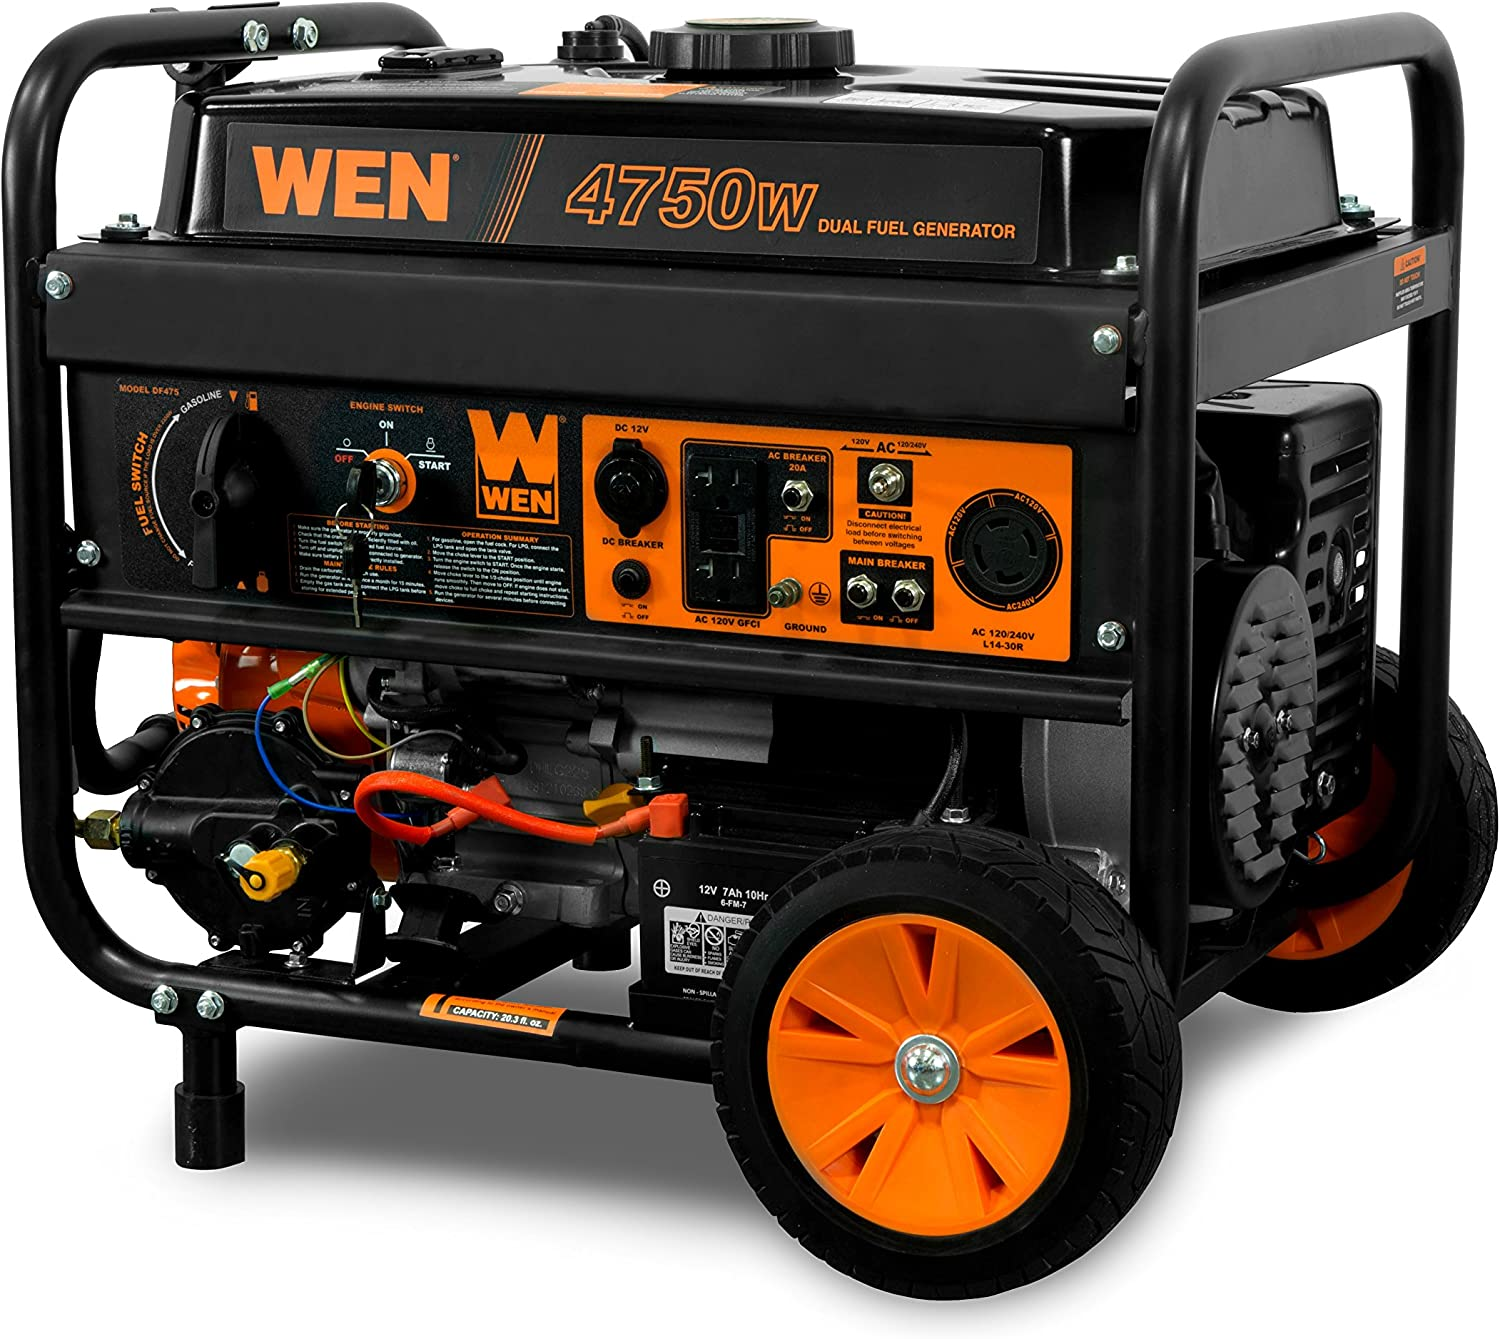 Best Home Generators For Power Outages (2021): Top 10 List 1